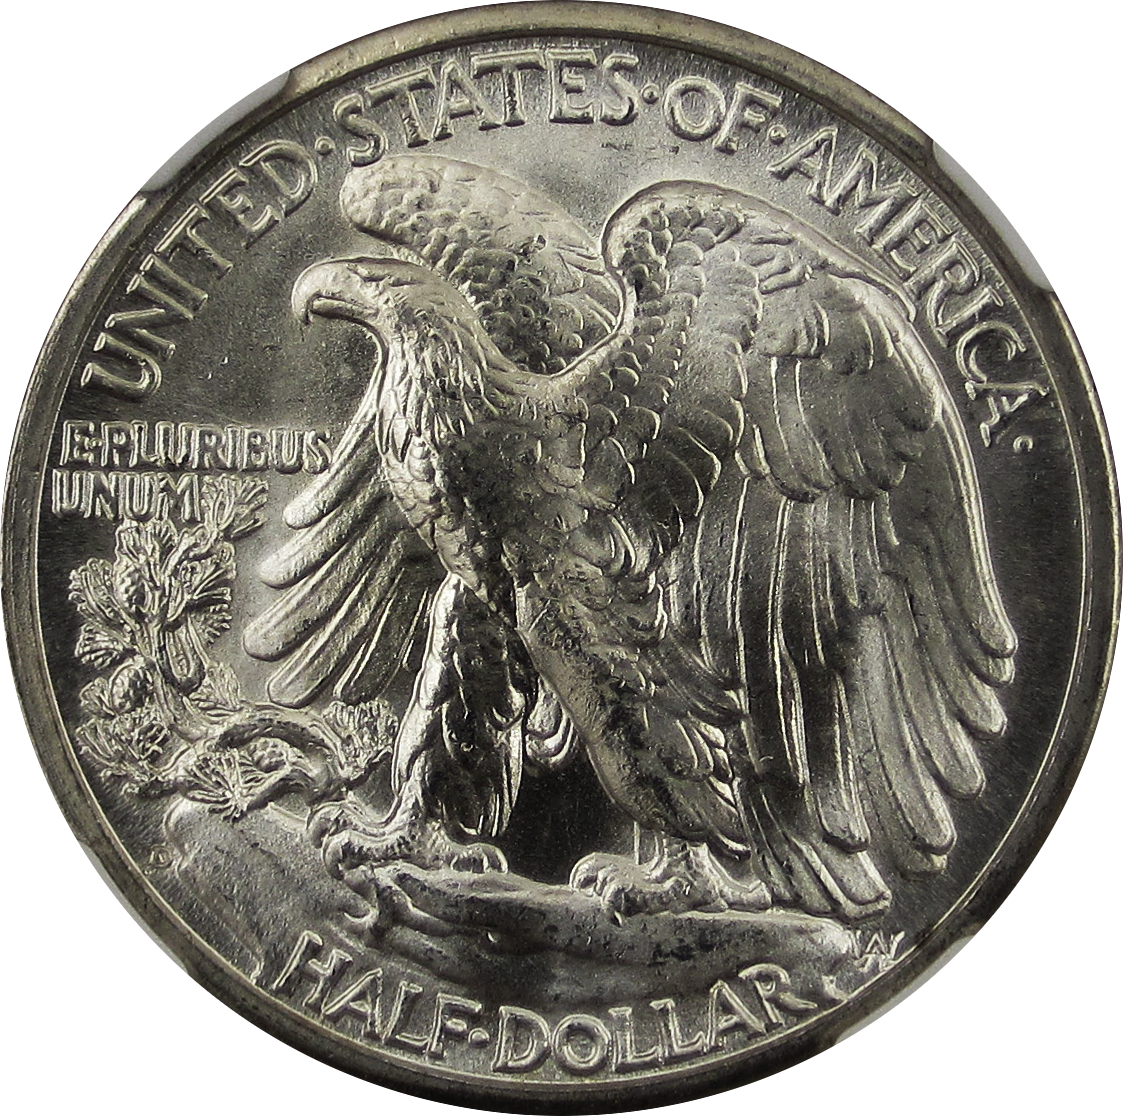 Audrey Munson On Walking Liberty Half Dollar Designed By